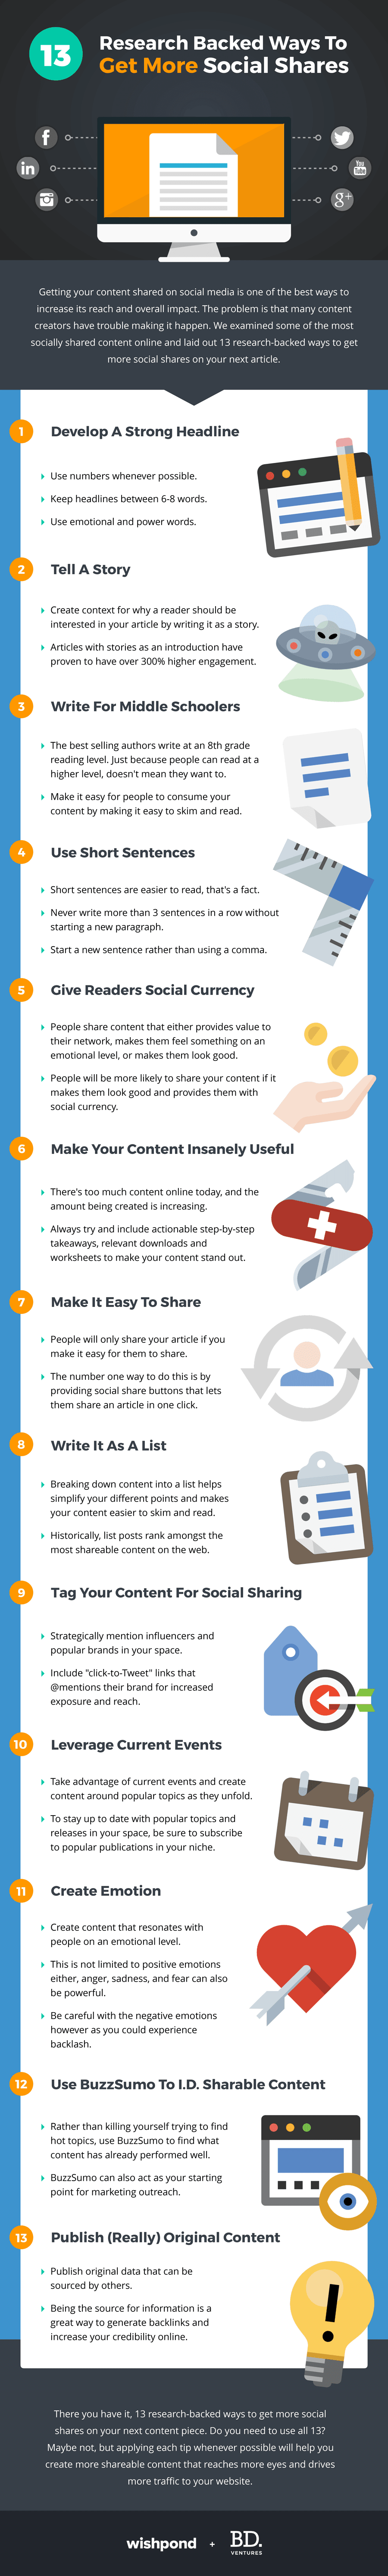 13 Ways for Social Shares Infographic